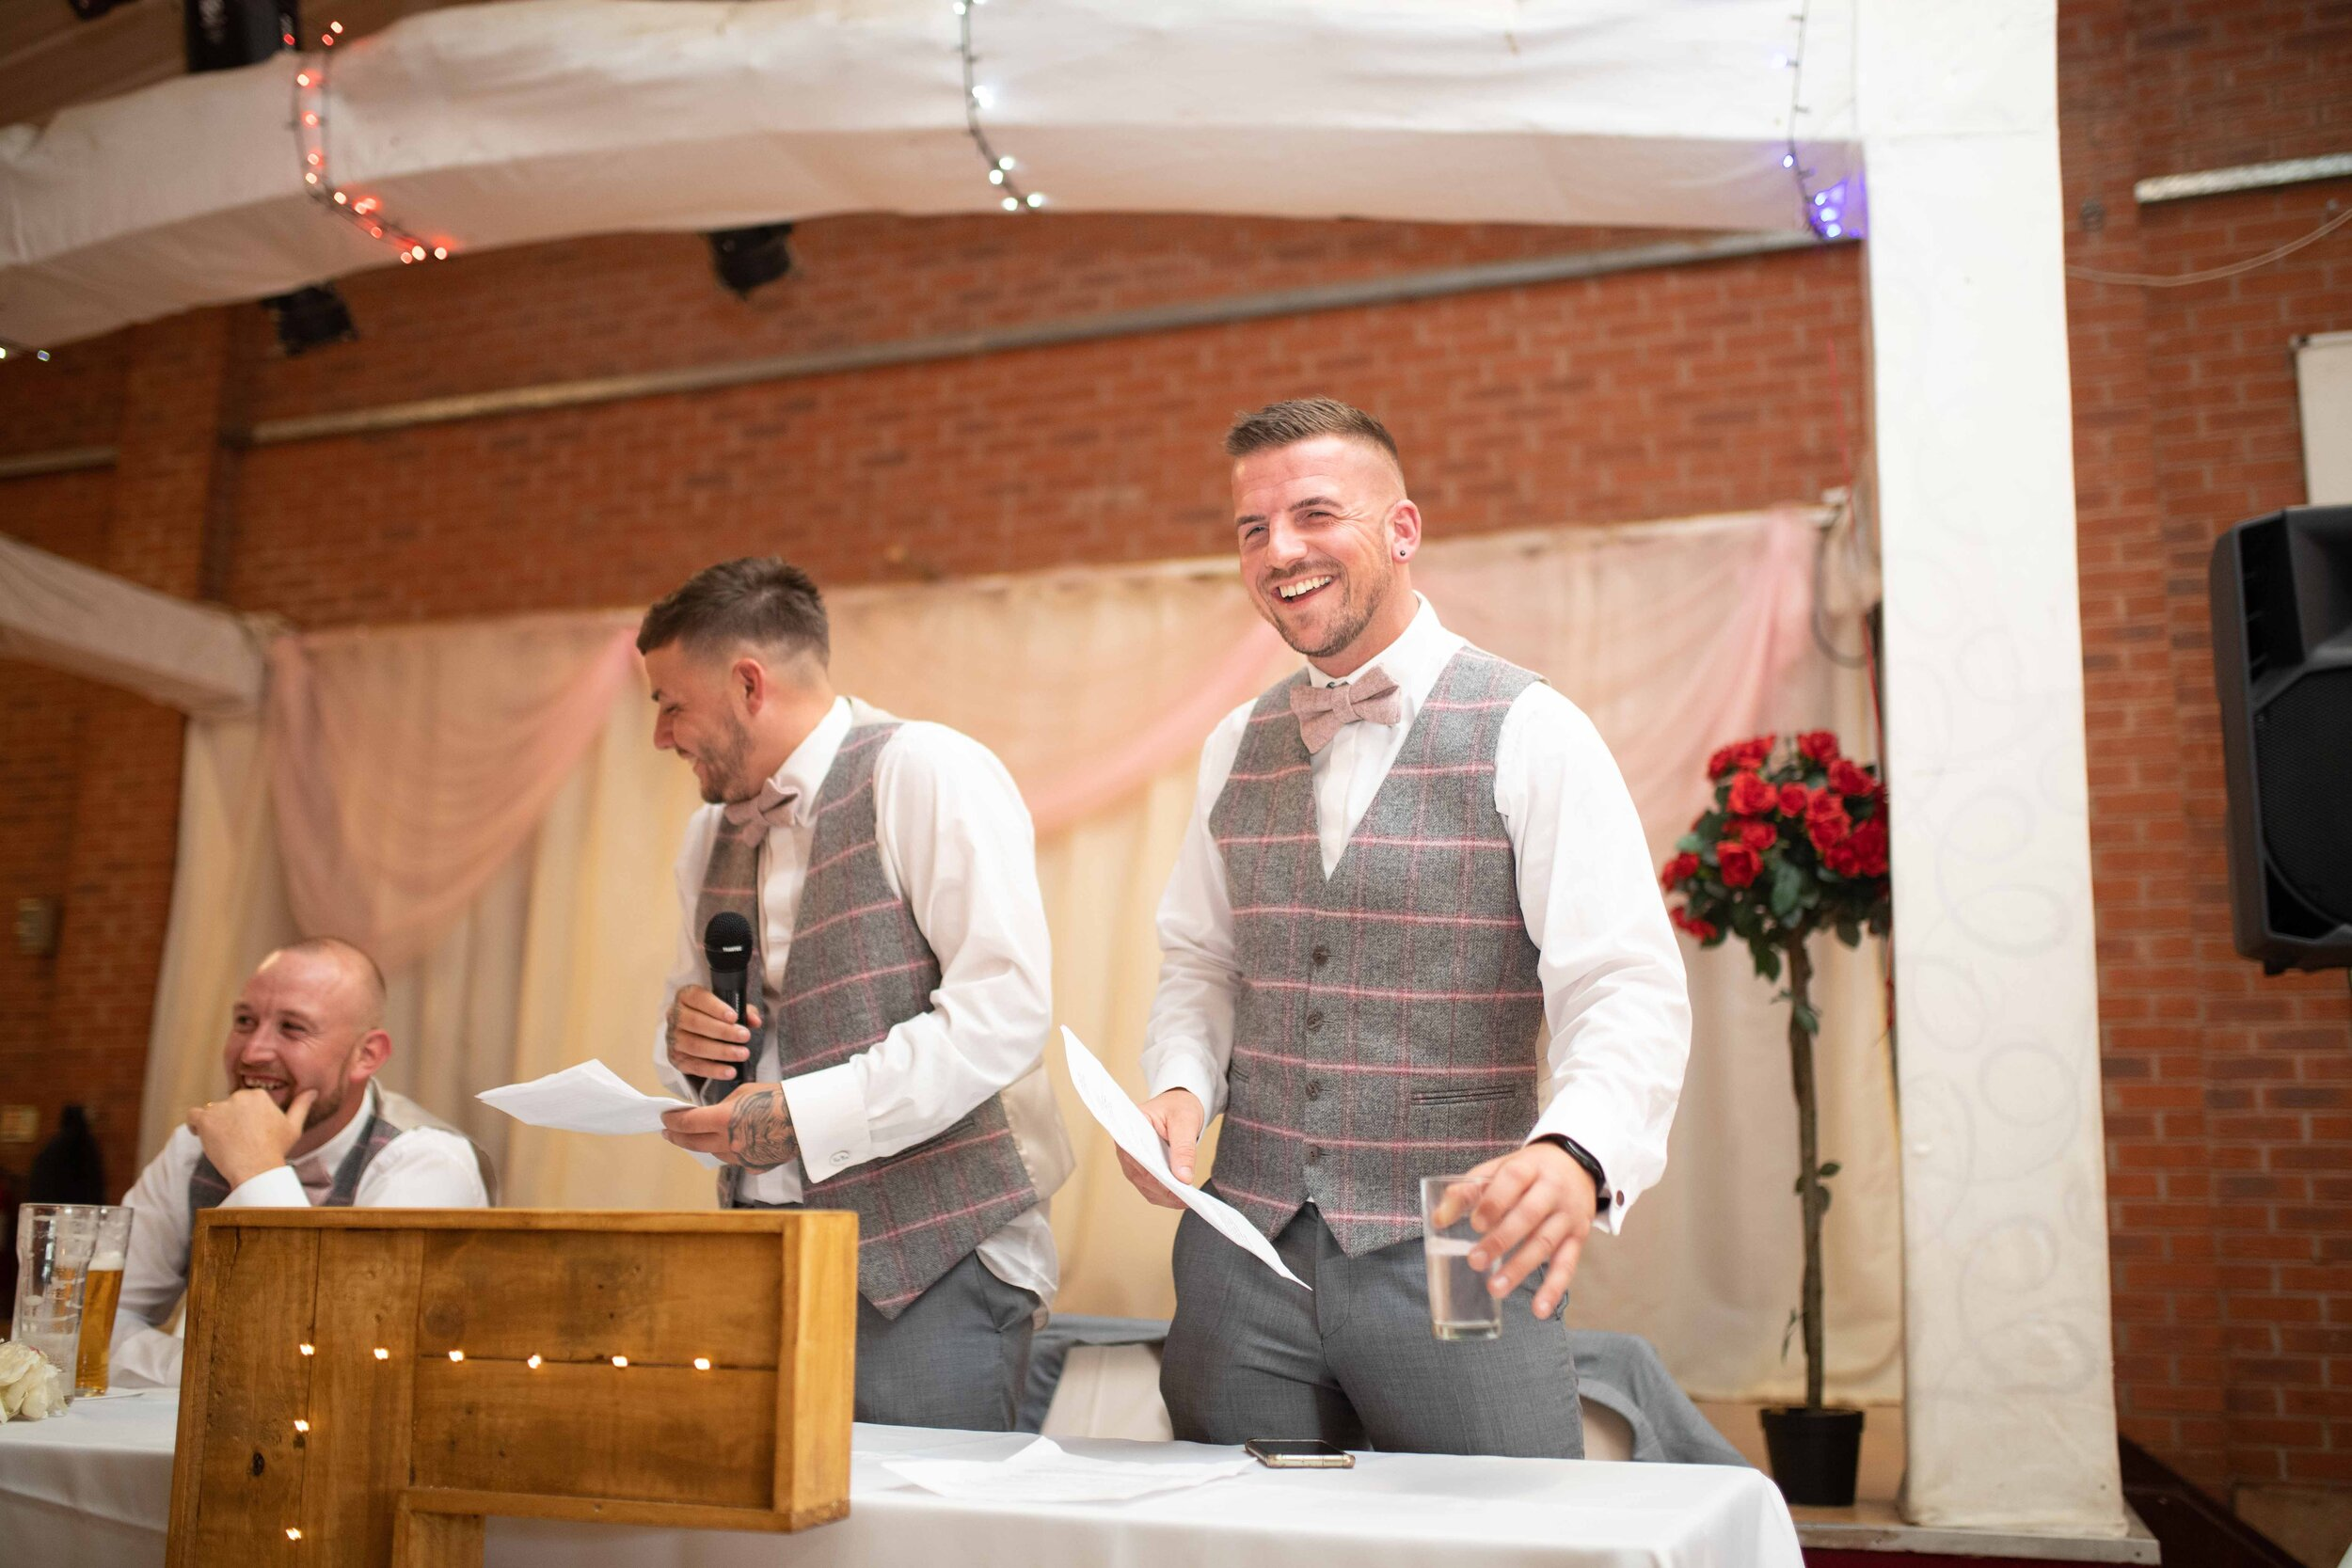 Lea Cooper photography - wedding photography - st Lawrence church dalaston West Midlands Willenhall Wednesday wedding photographer Brookfields club house cannock road - 32.JPG